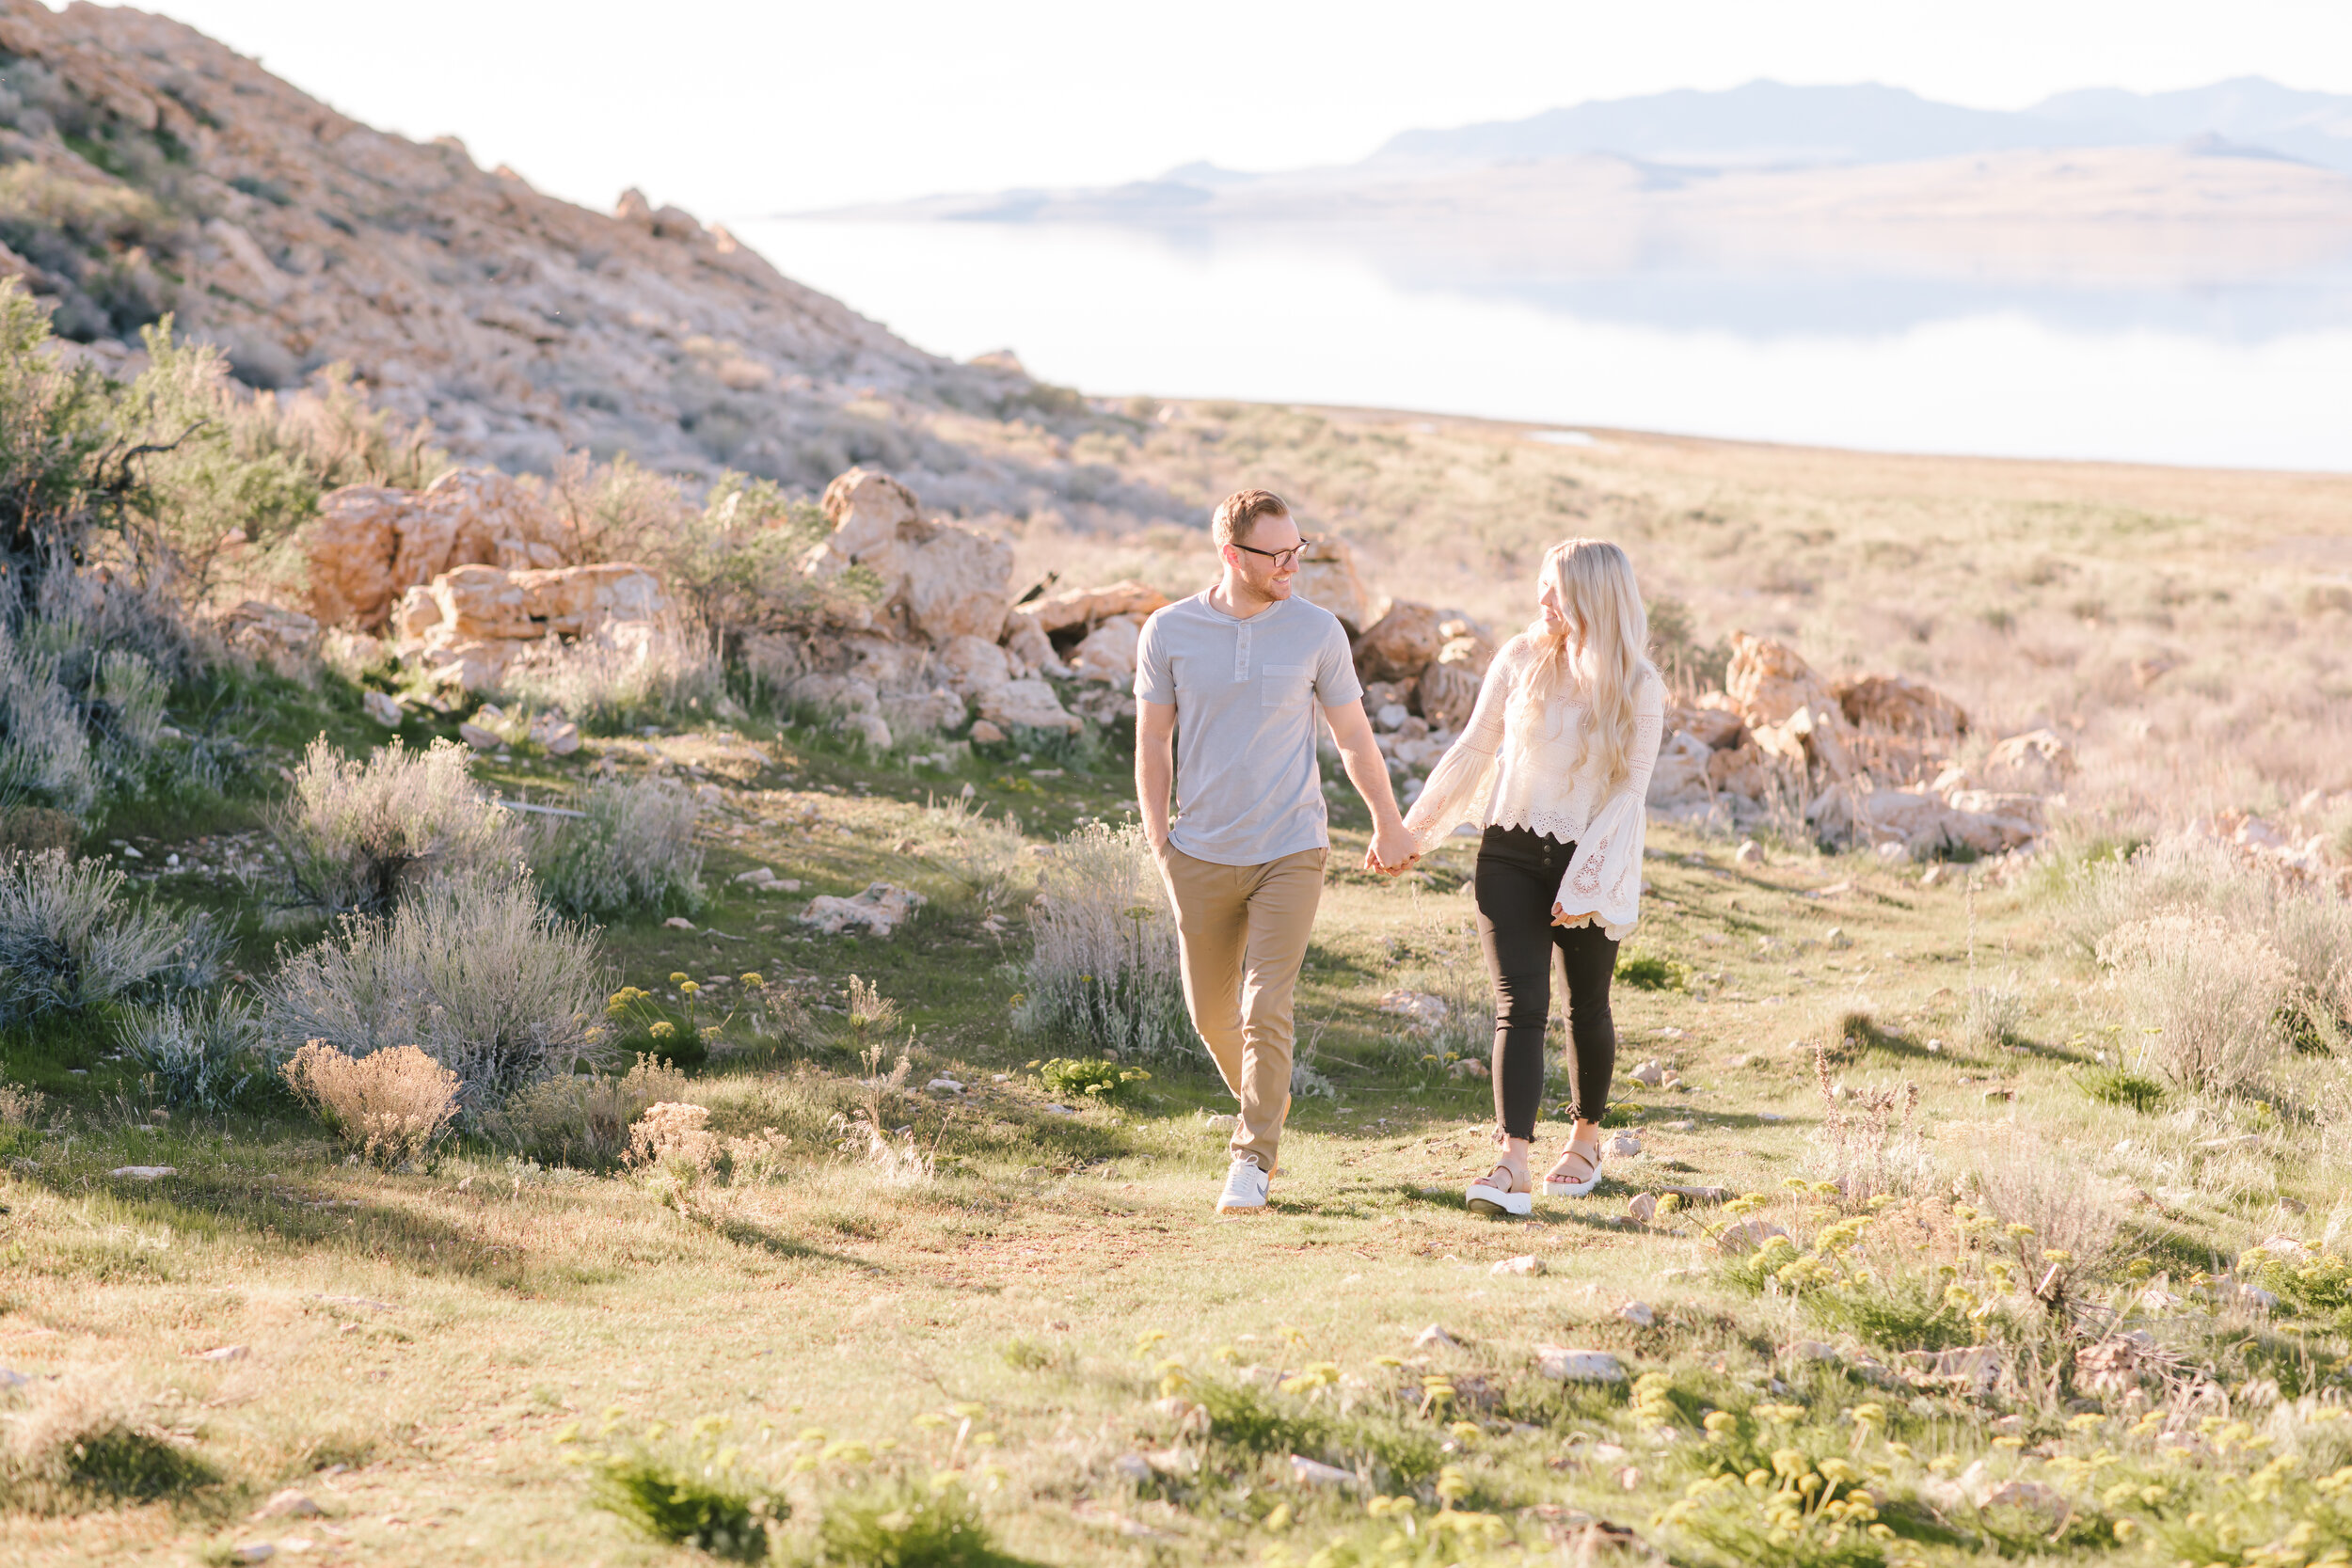 utah couple engagement photos close up dancing romantic flirtatious leading the way beautiful location antelope island casual semi formal outfit inspiration couple goals outside natural holding hands pose beautiful bright lighting glowing couple engagement ideas #antelopeisland #couplekissing #engagementoutfitinspo #locationinspo #romantic #outside #engagementposes #engagementideas #weddingring